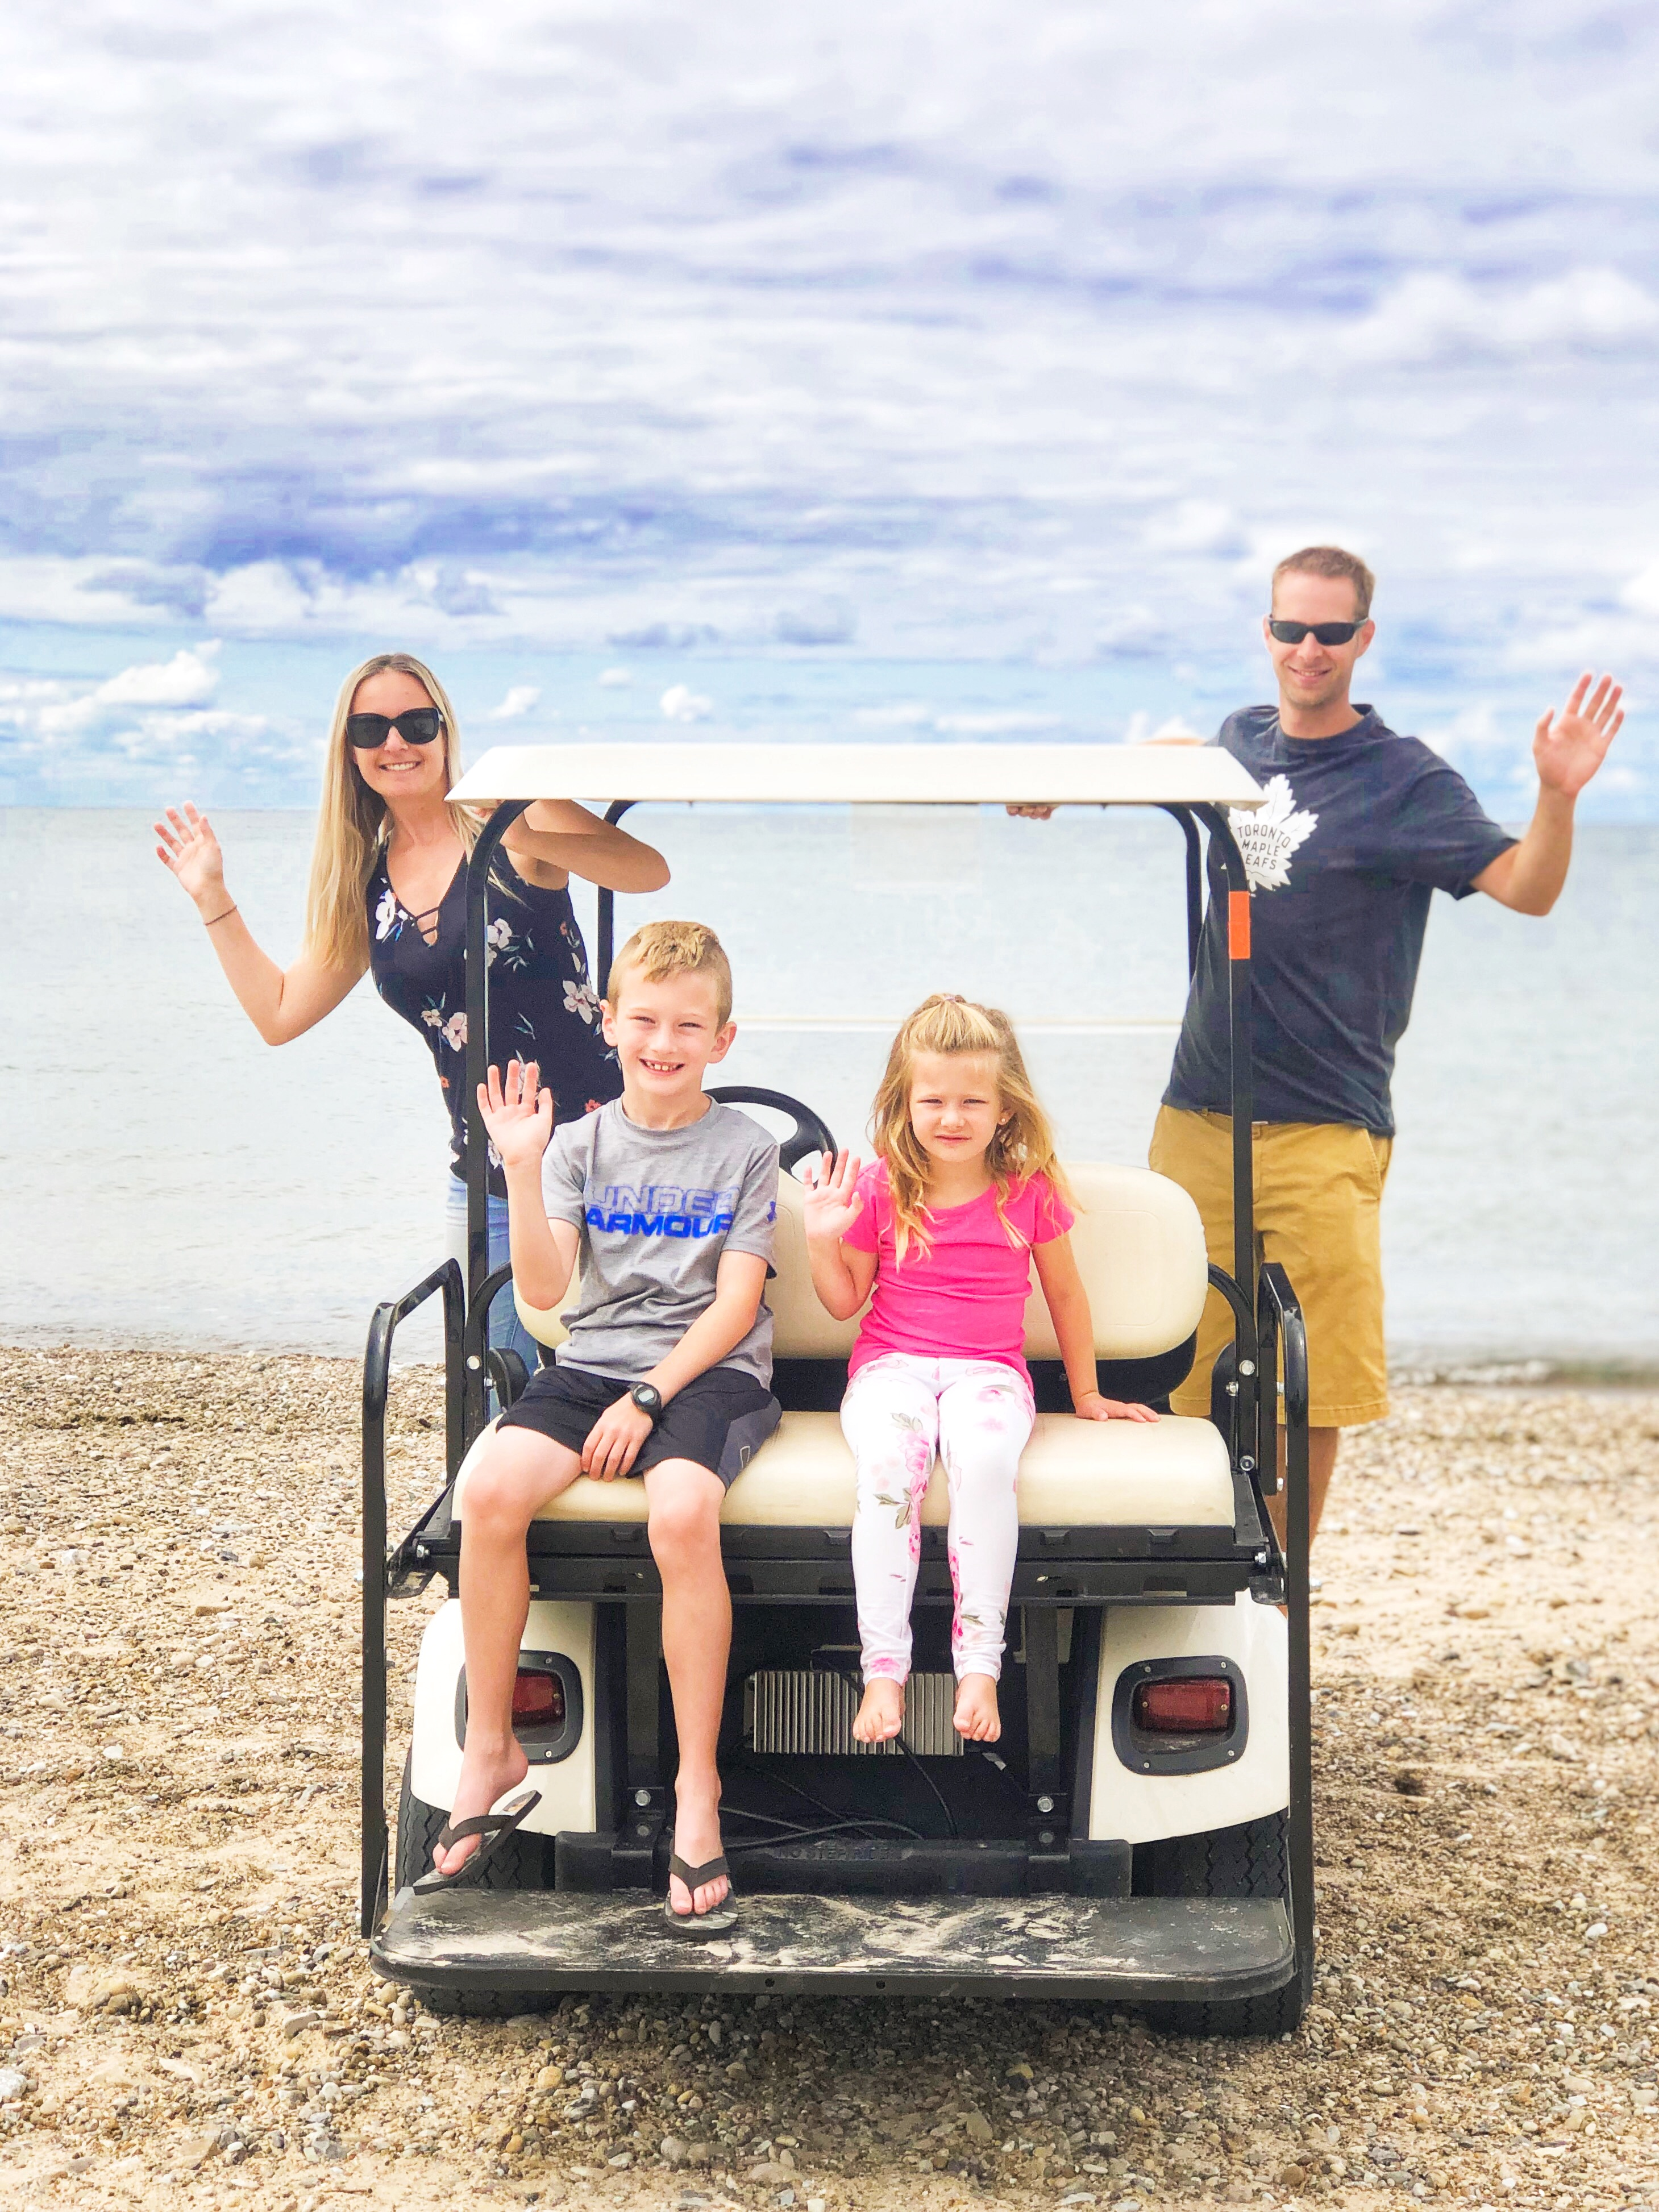 Travel Guide to Sherkston Shores on Livin' Life with Style